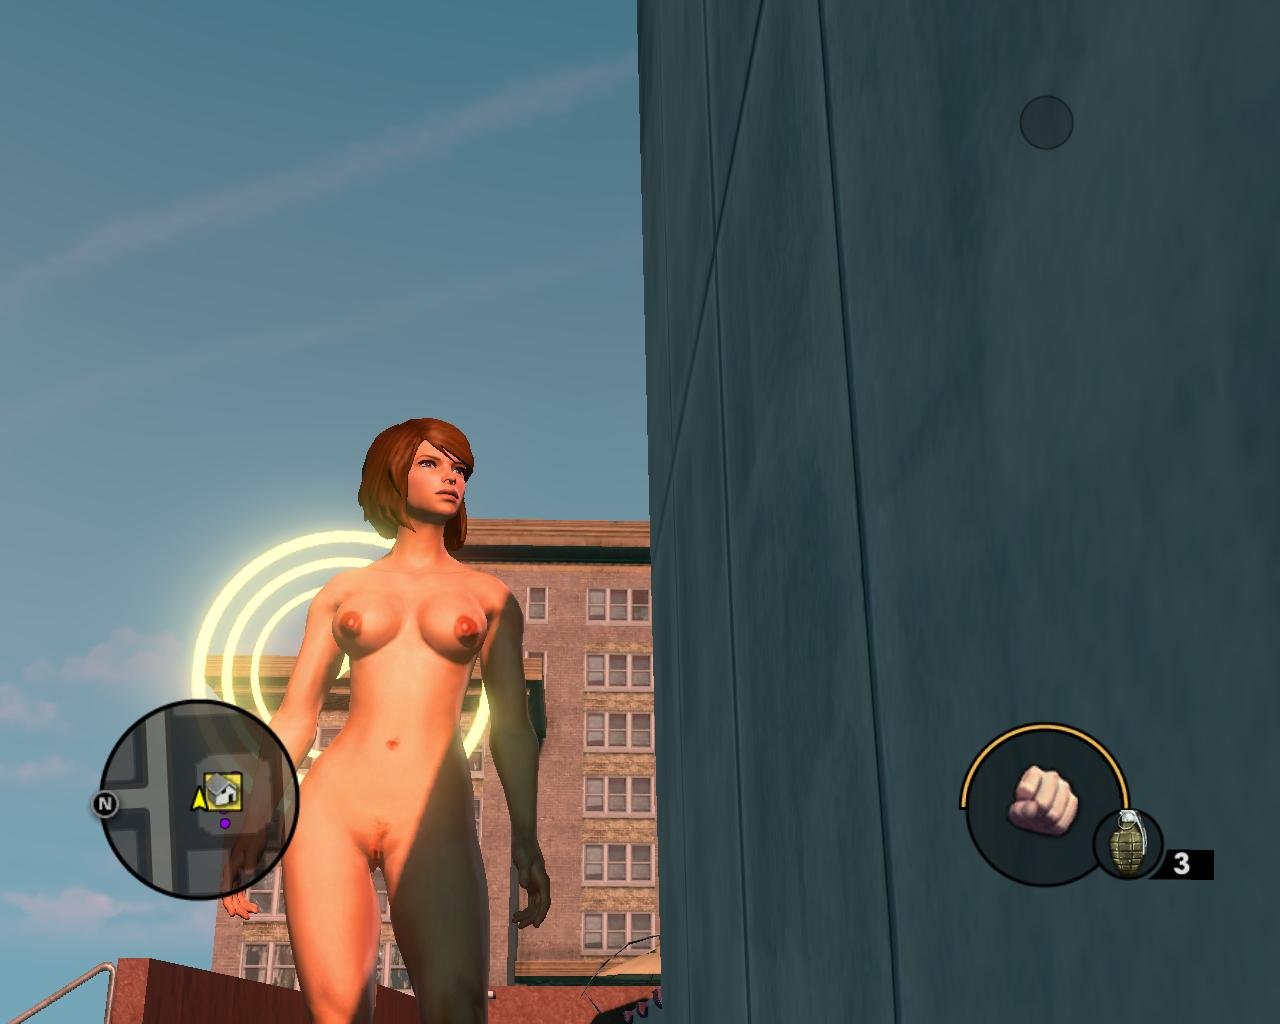 Saints row 2 nude patch steam anime pic